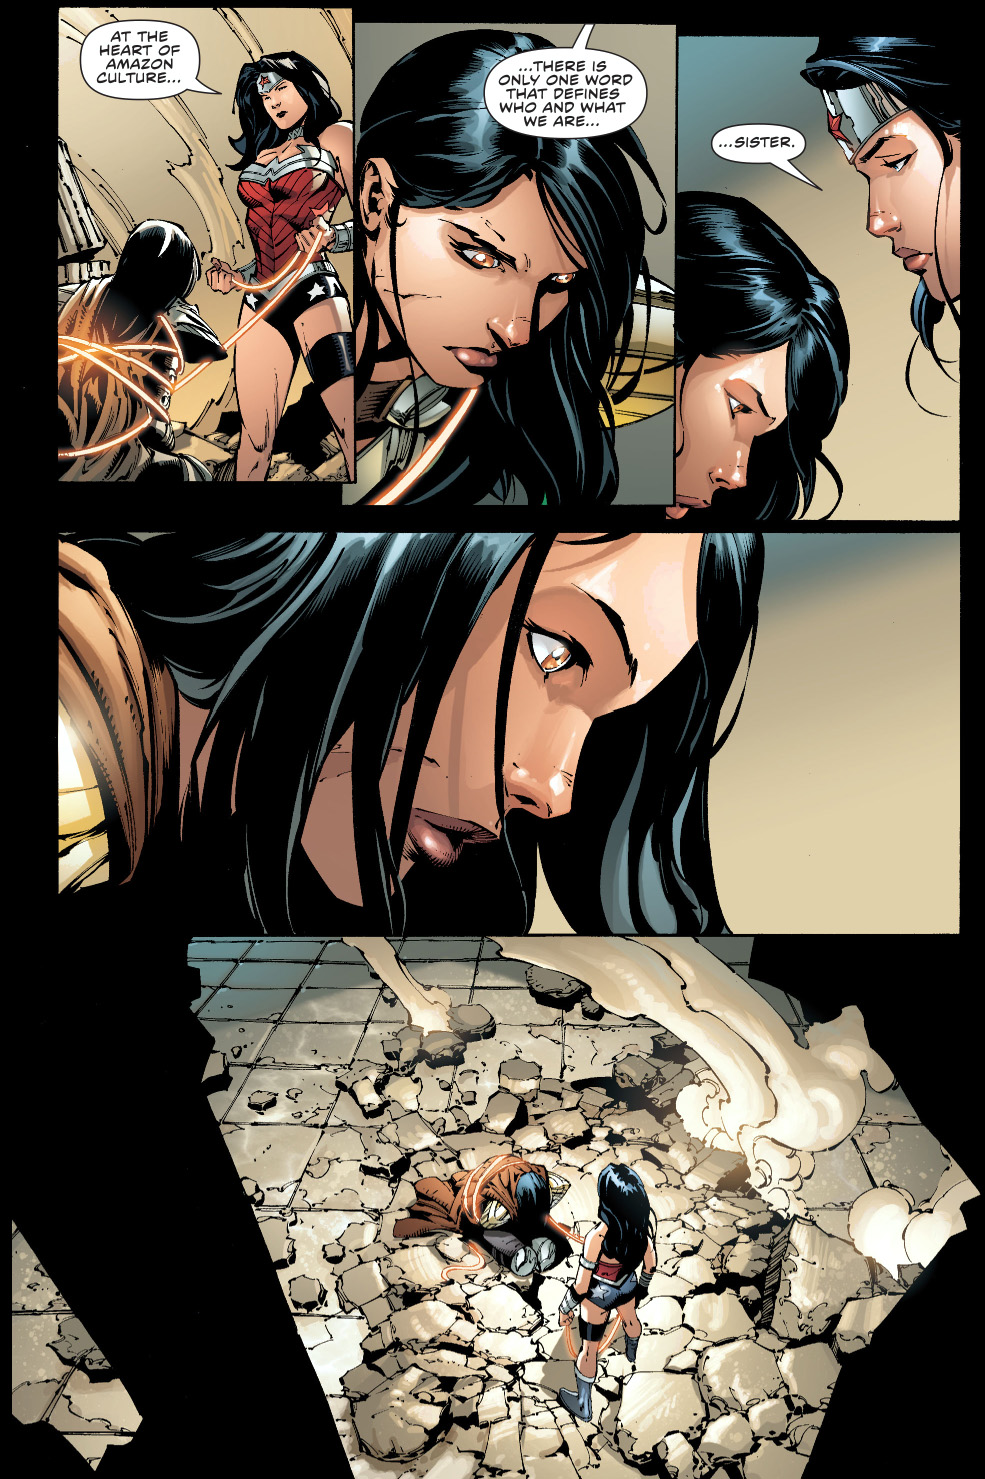 Jason Todd And Dick Grayson Wonder Woman Takes Dow...